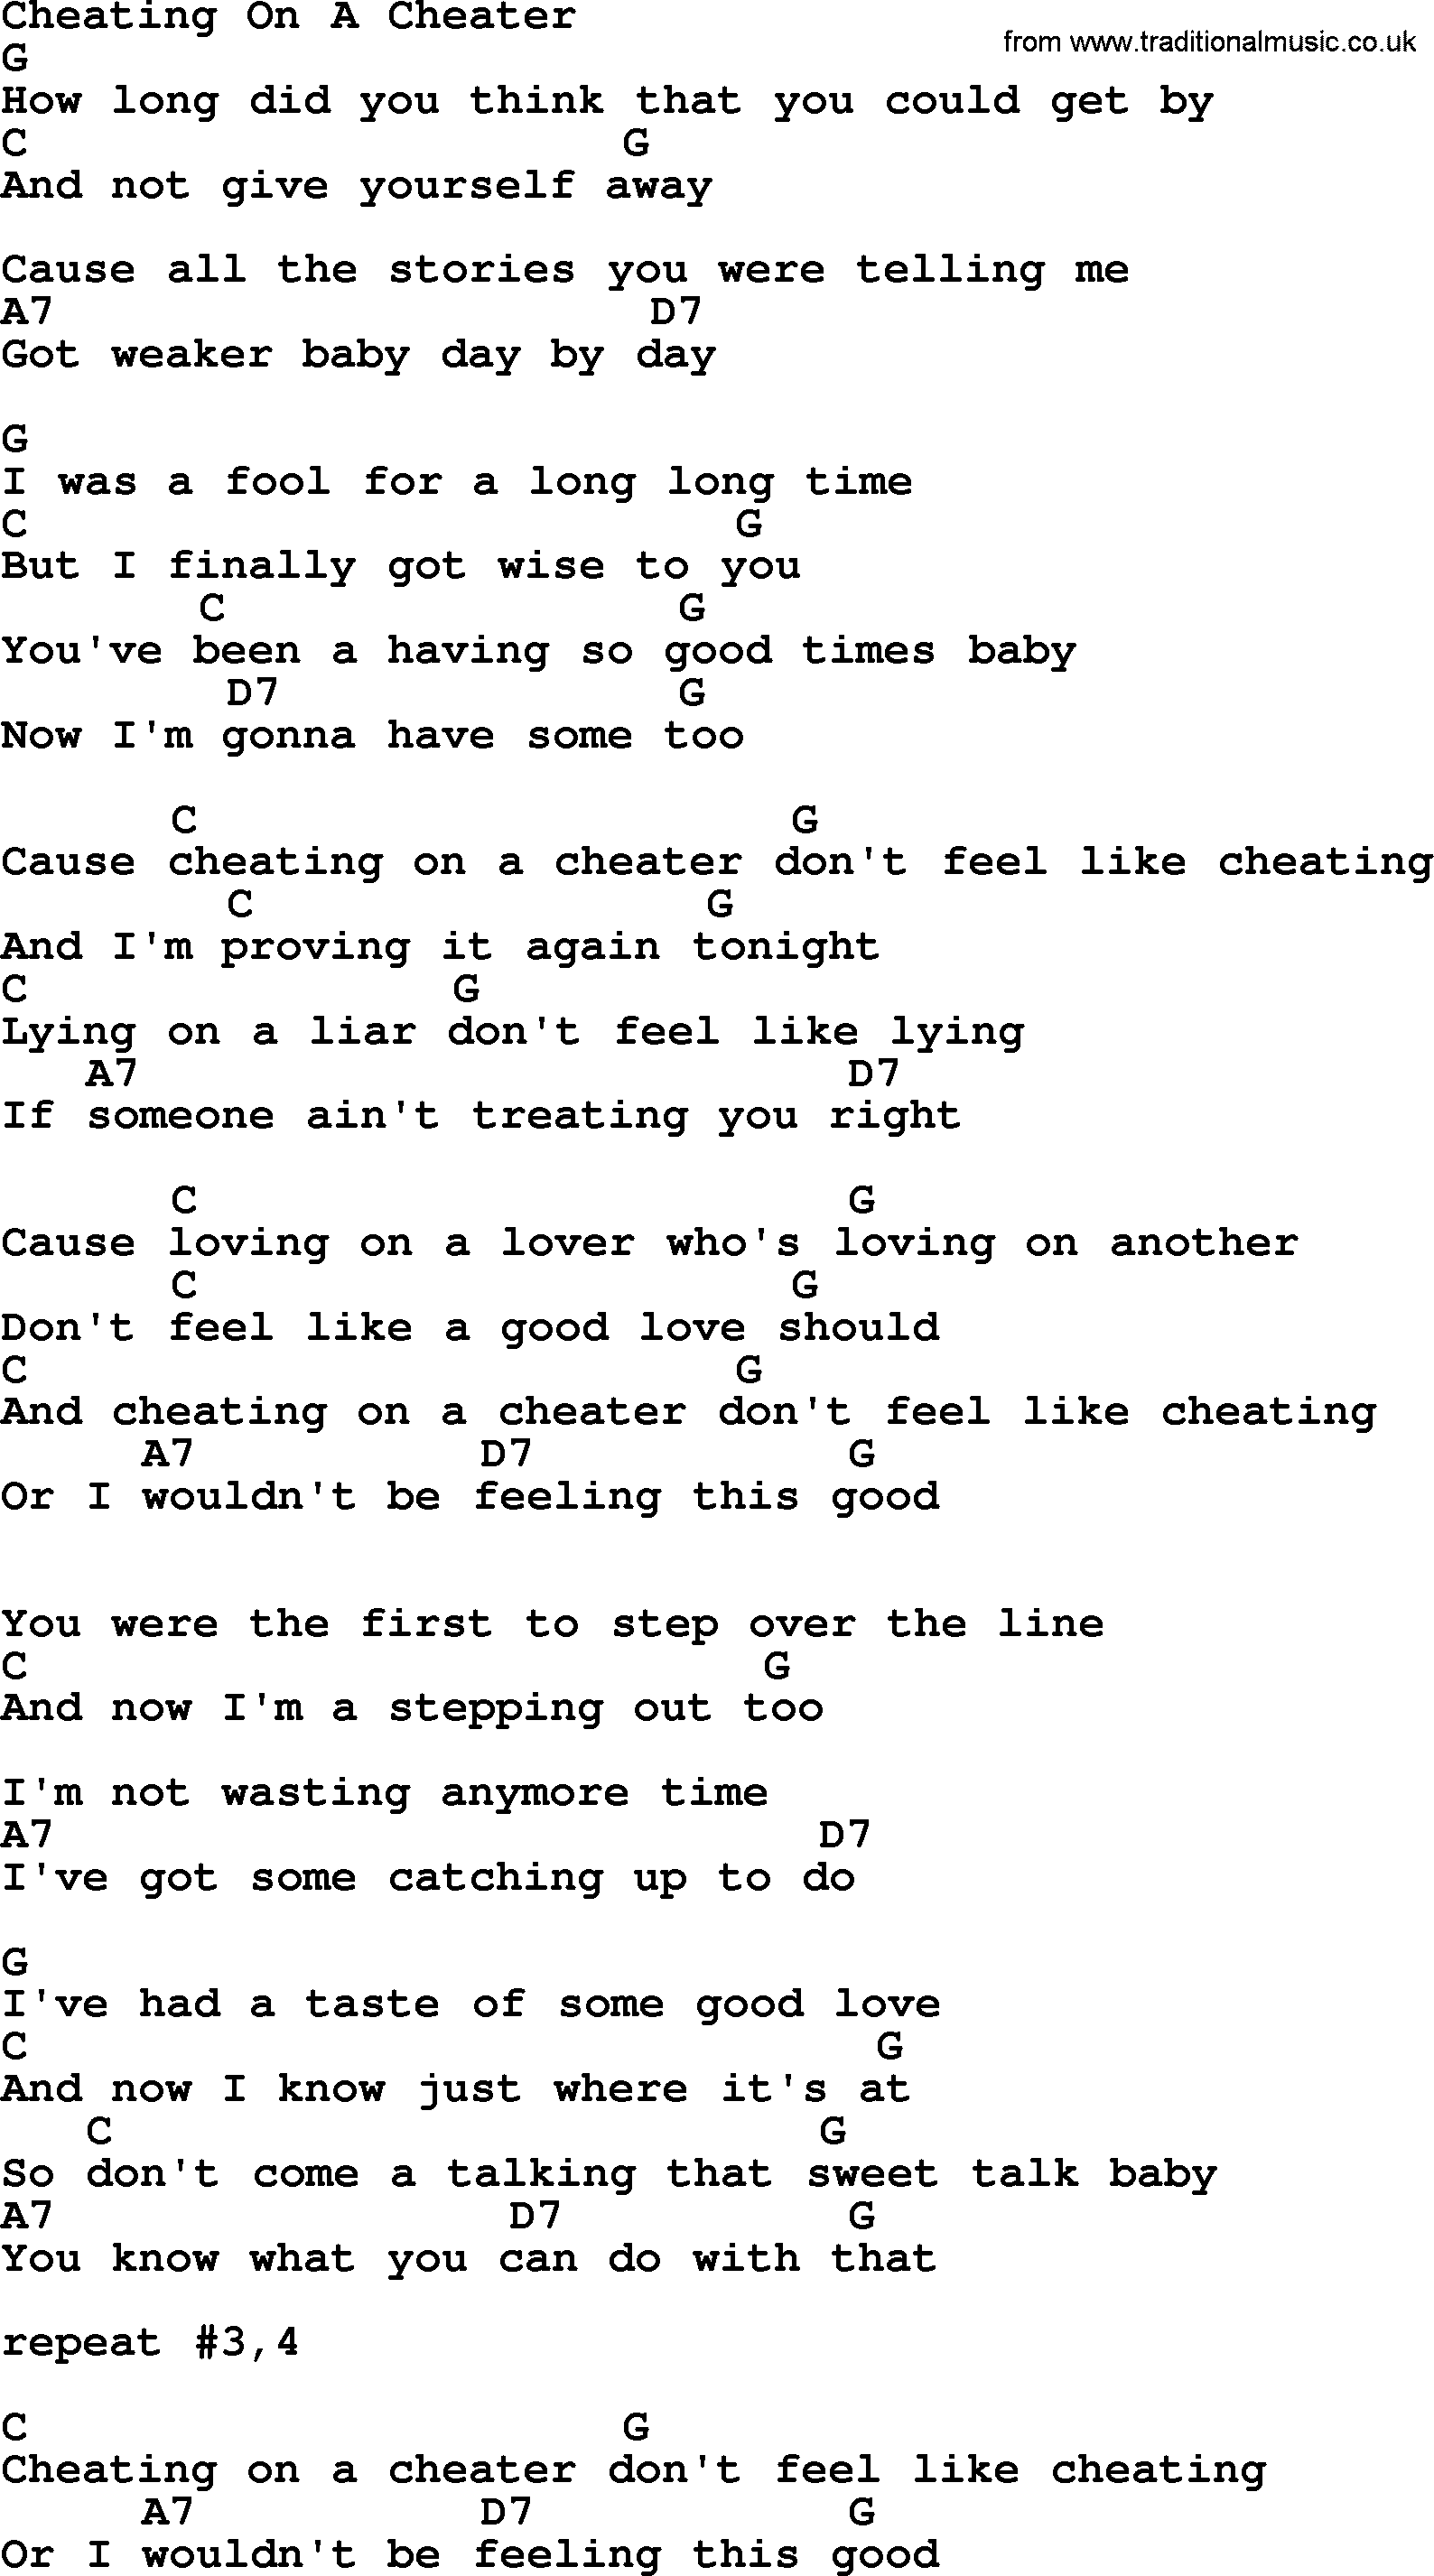 A song about cheating